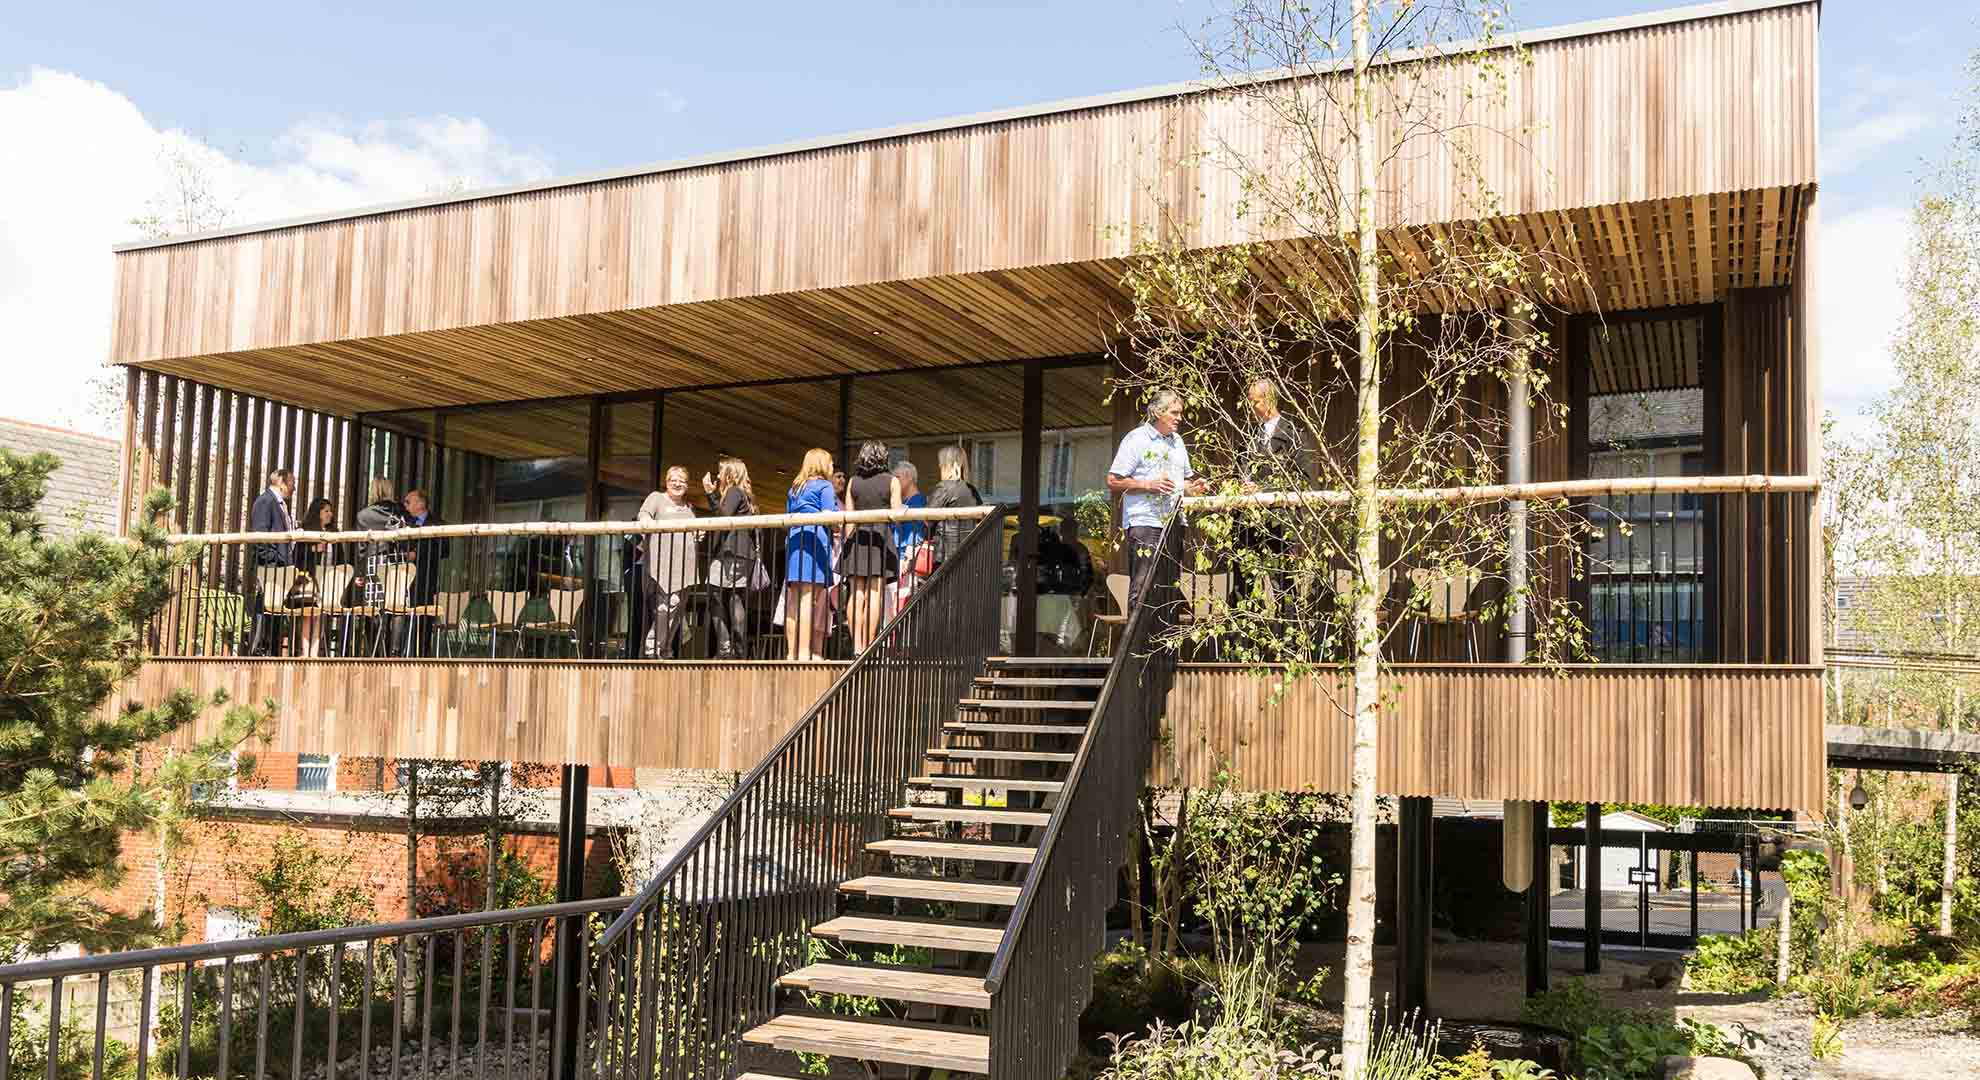 This Maggie's Centre was designed by dRMM Architects with landscaping by Rupert Muldoon